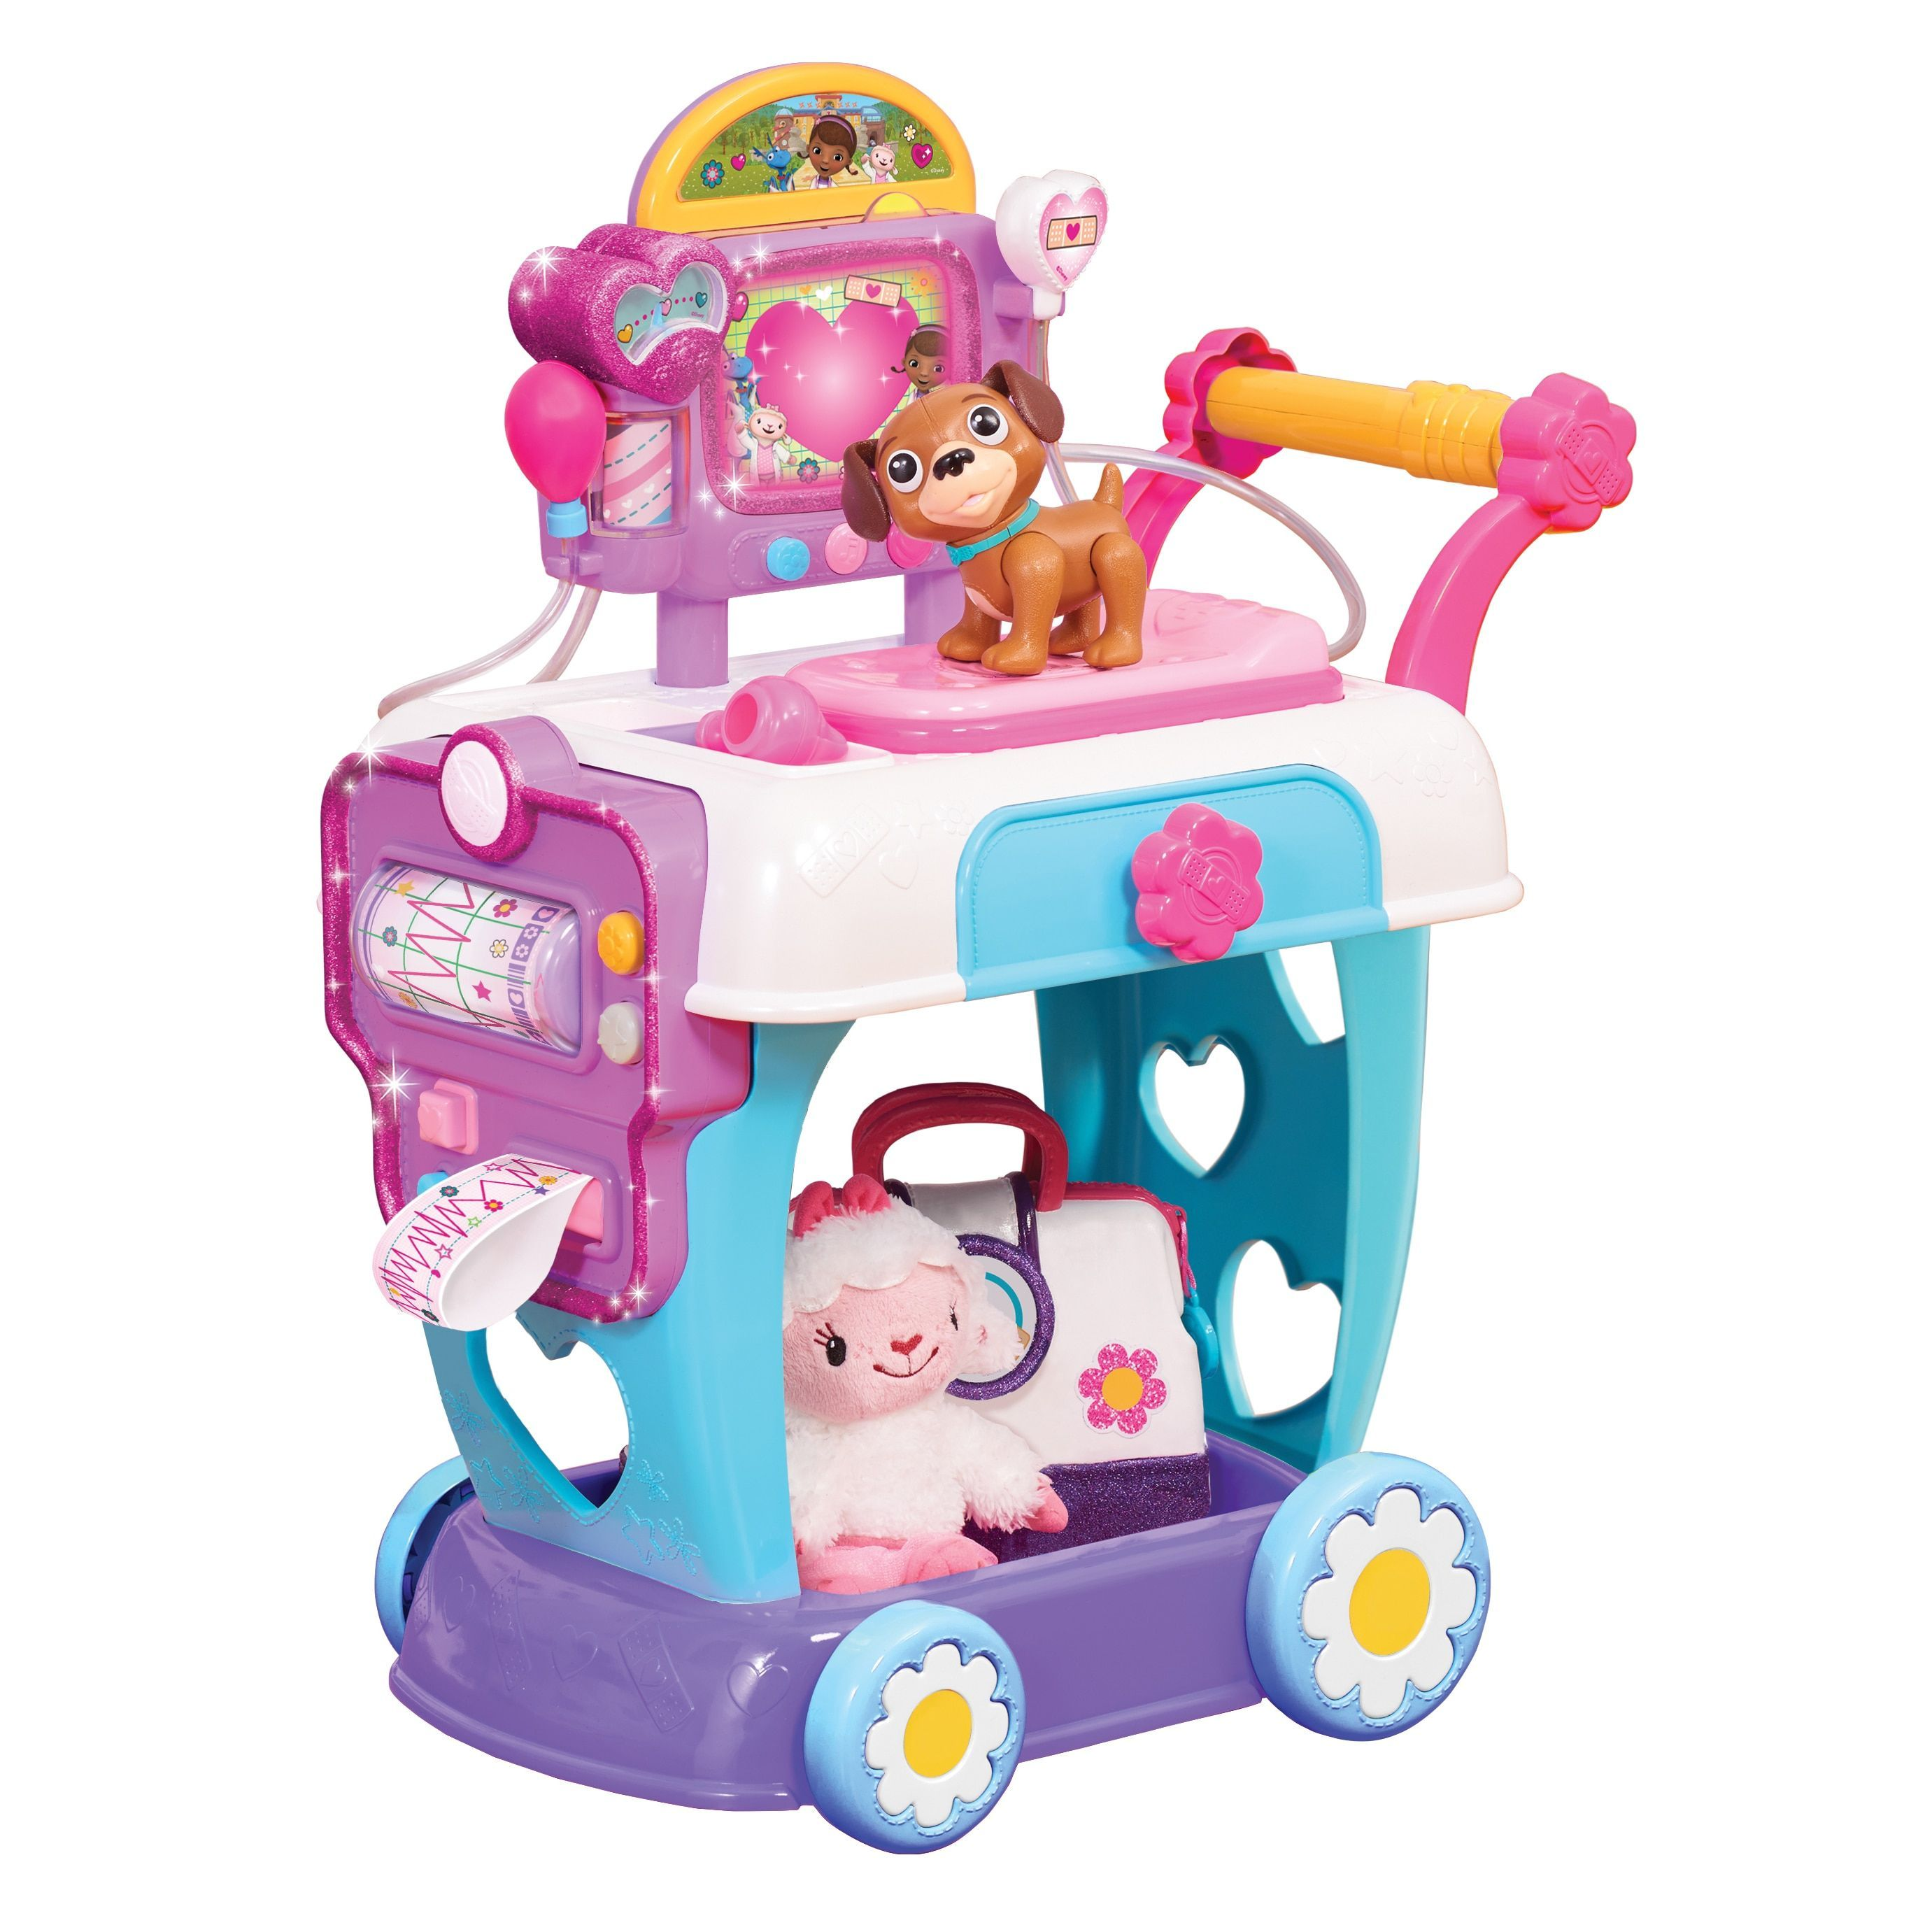 cc70d086620 Doc McStuffins Plastic Toy Hospital Care Cart (G886144920967)